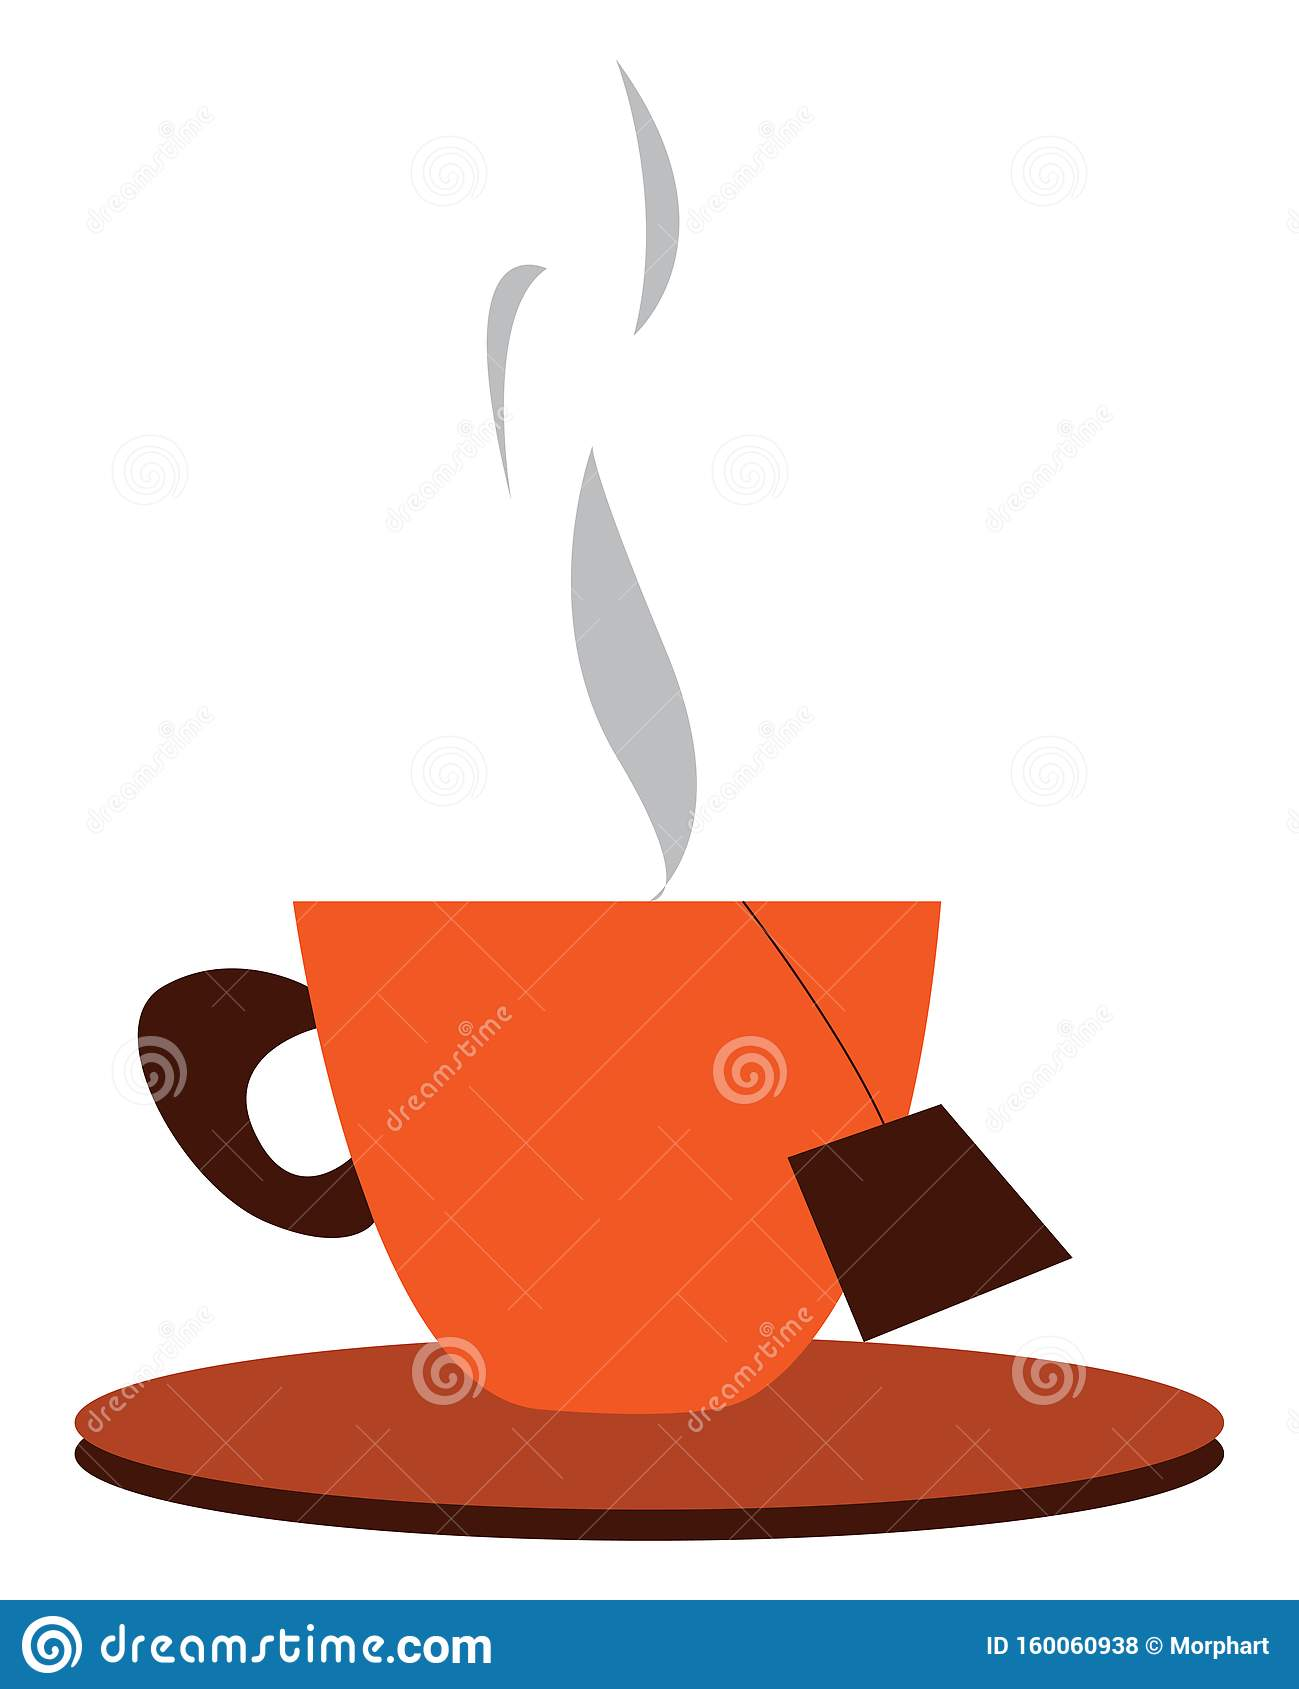 A Tea Cup And Saucer With Hot Tea And A Dip Tea Bag Vector Color Drawing Or Illustration Stock Vector Illustration Of Drink Plate 160060938